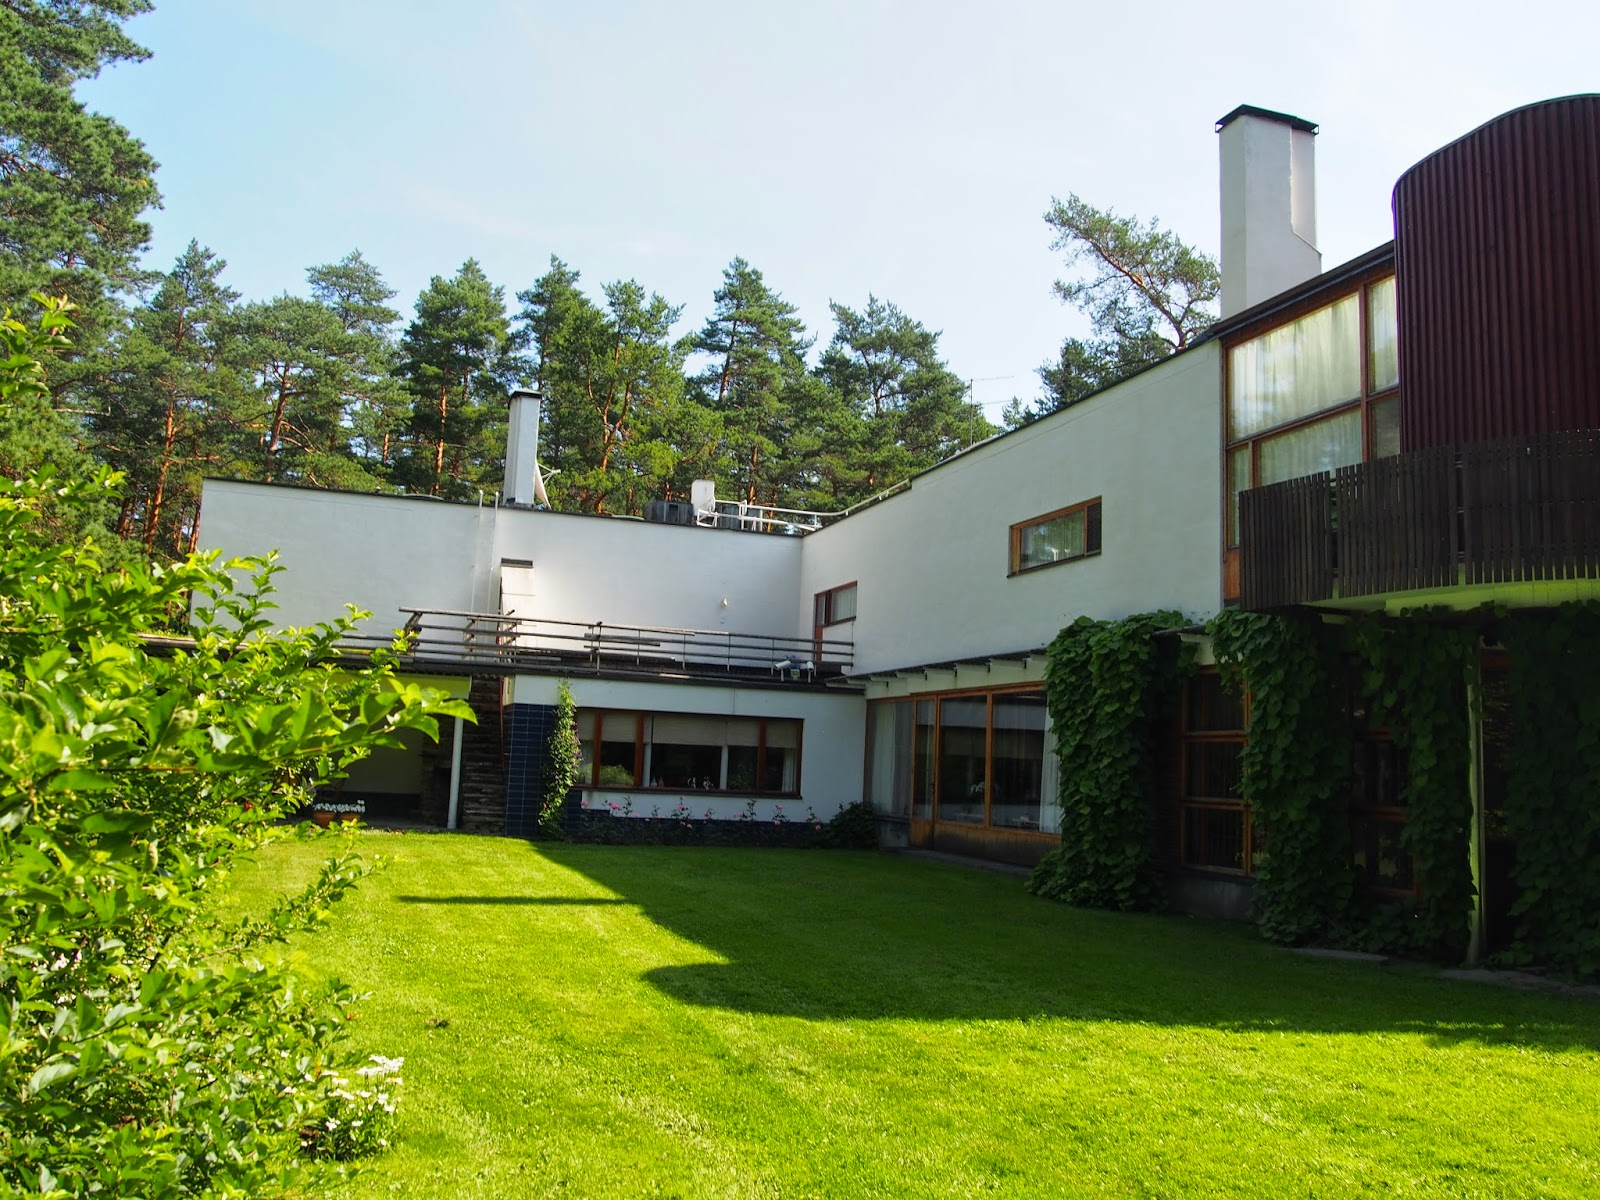 Villa Mairea Pori, The Intercontinental Gardener: Notes from Alvar Aalto's Villa ...